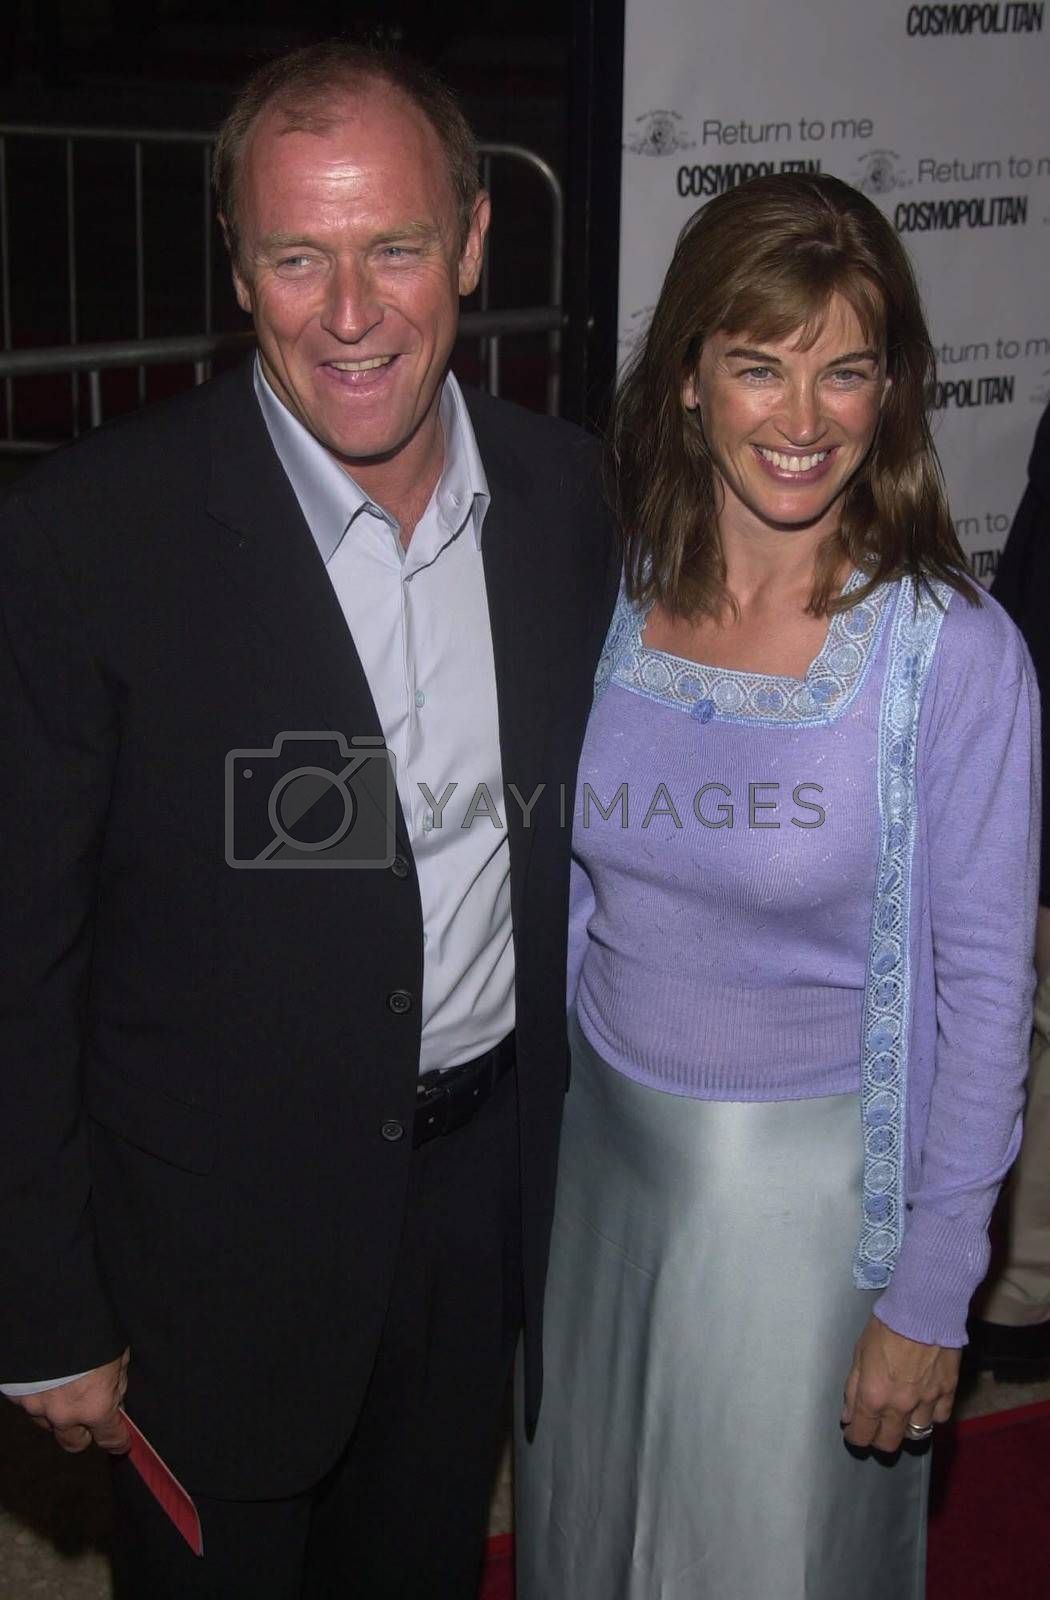 """Corbin Bernson and Amanda Pays at the premiere of MGM's """"RETURN TO ME"""" in Century City, 04-03-00"""